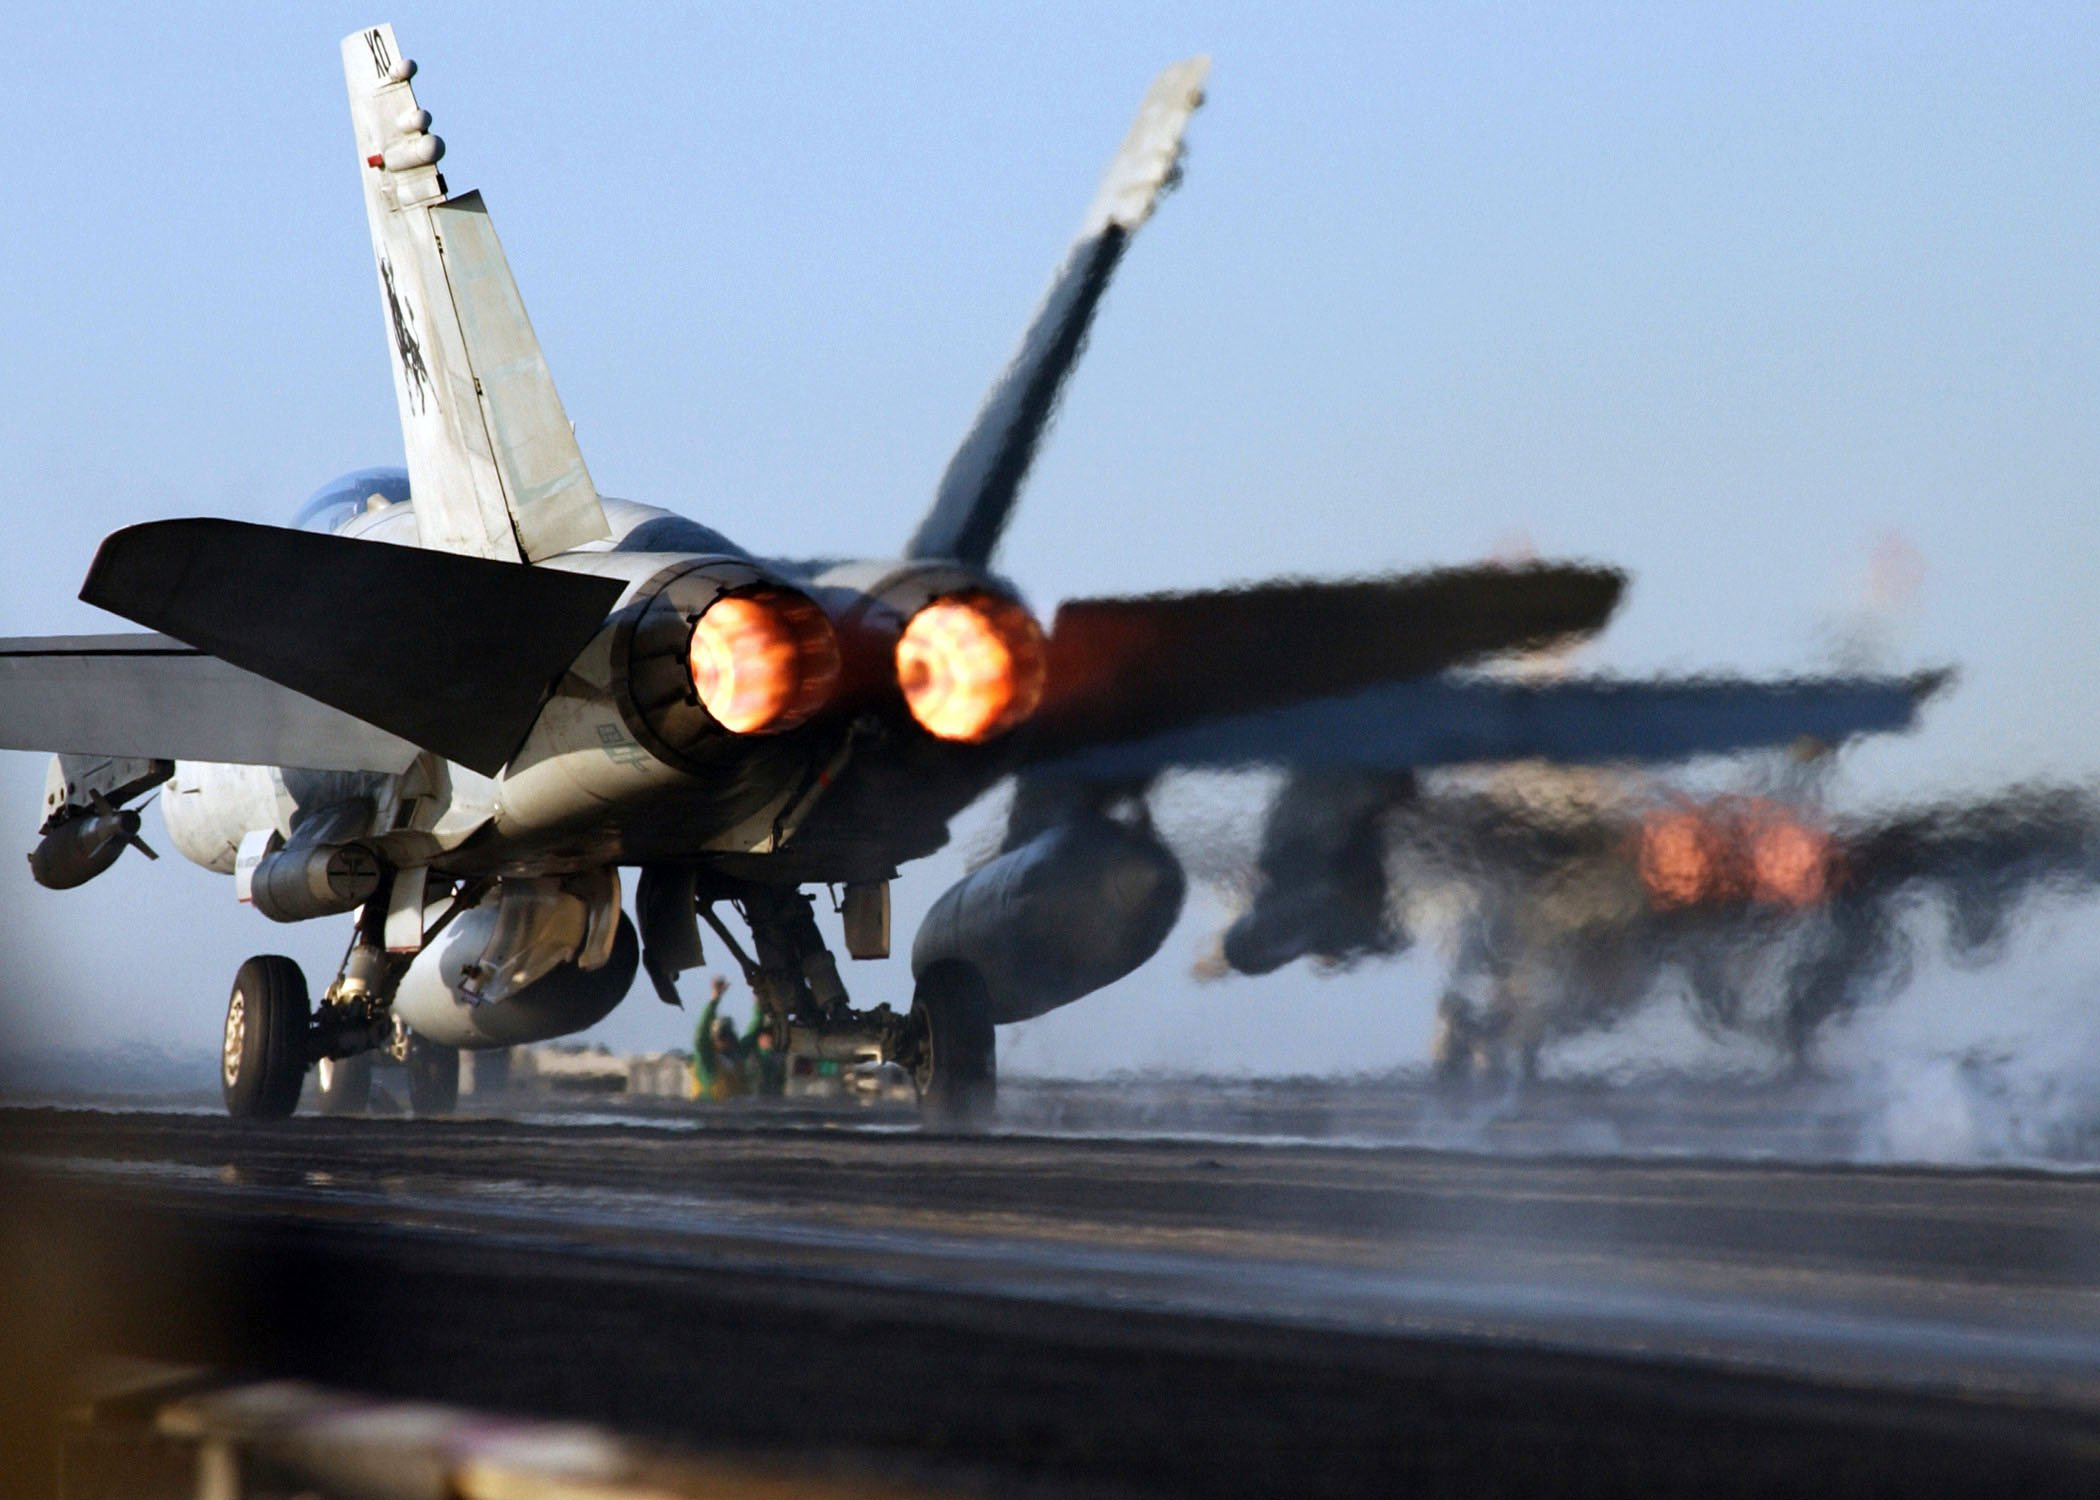 F 18 Fighter Jet Military Plane Airplane Usa 58 Wallpaper